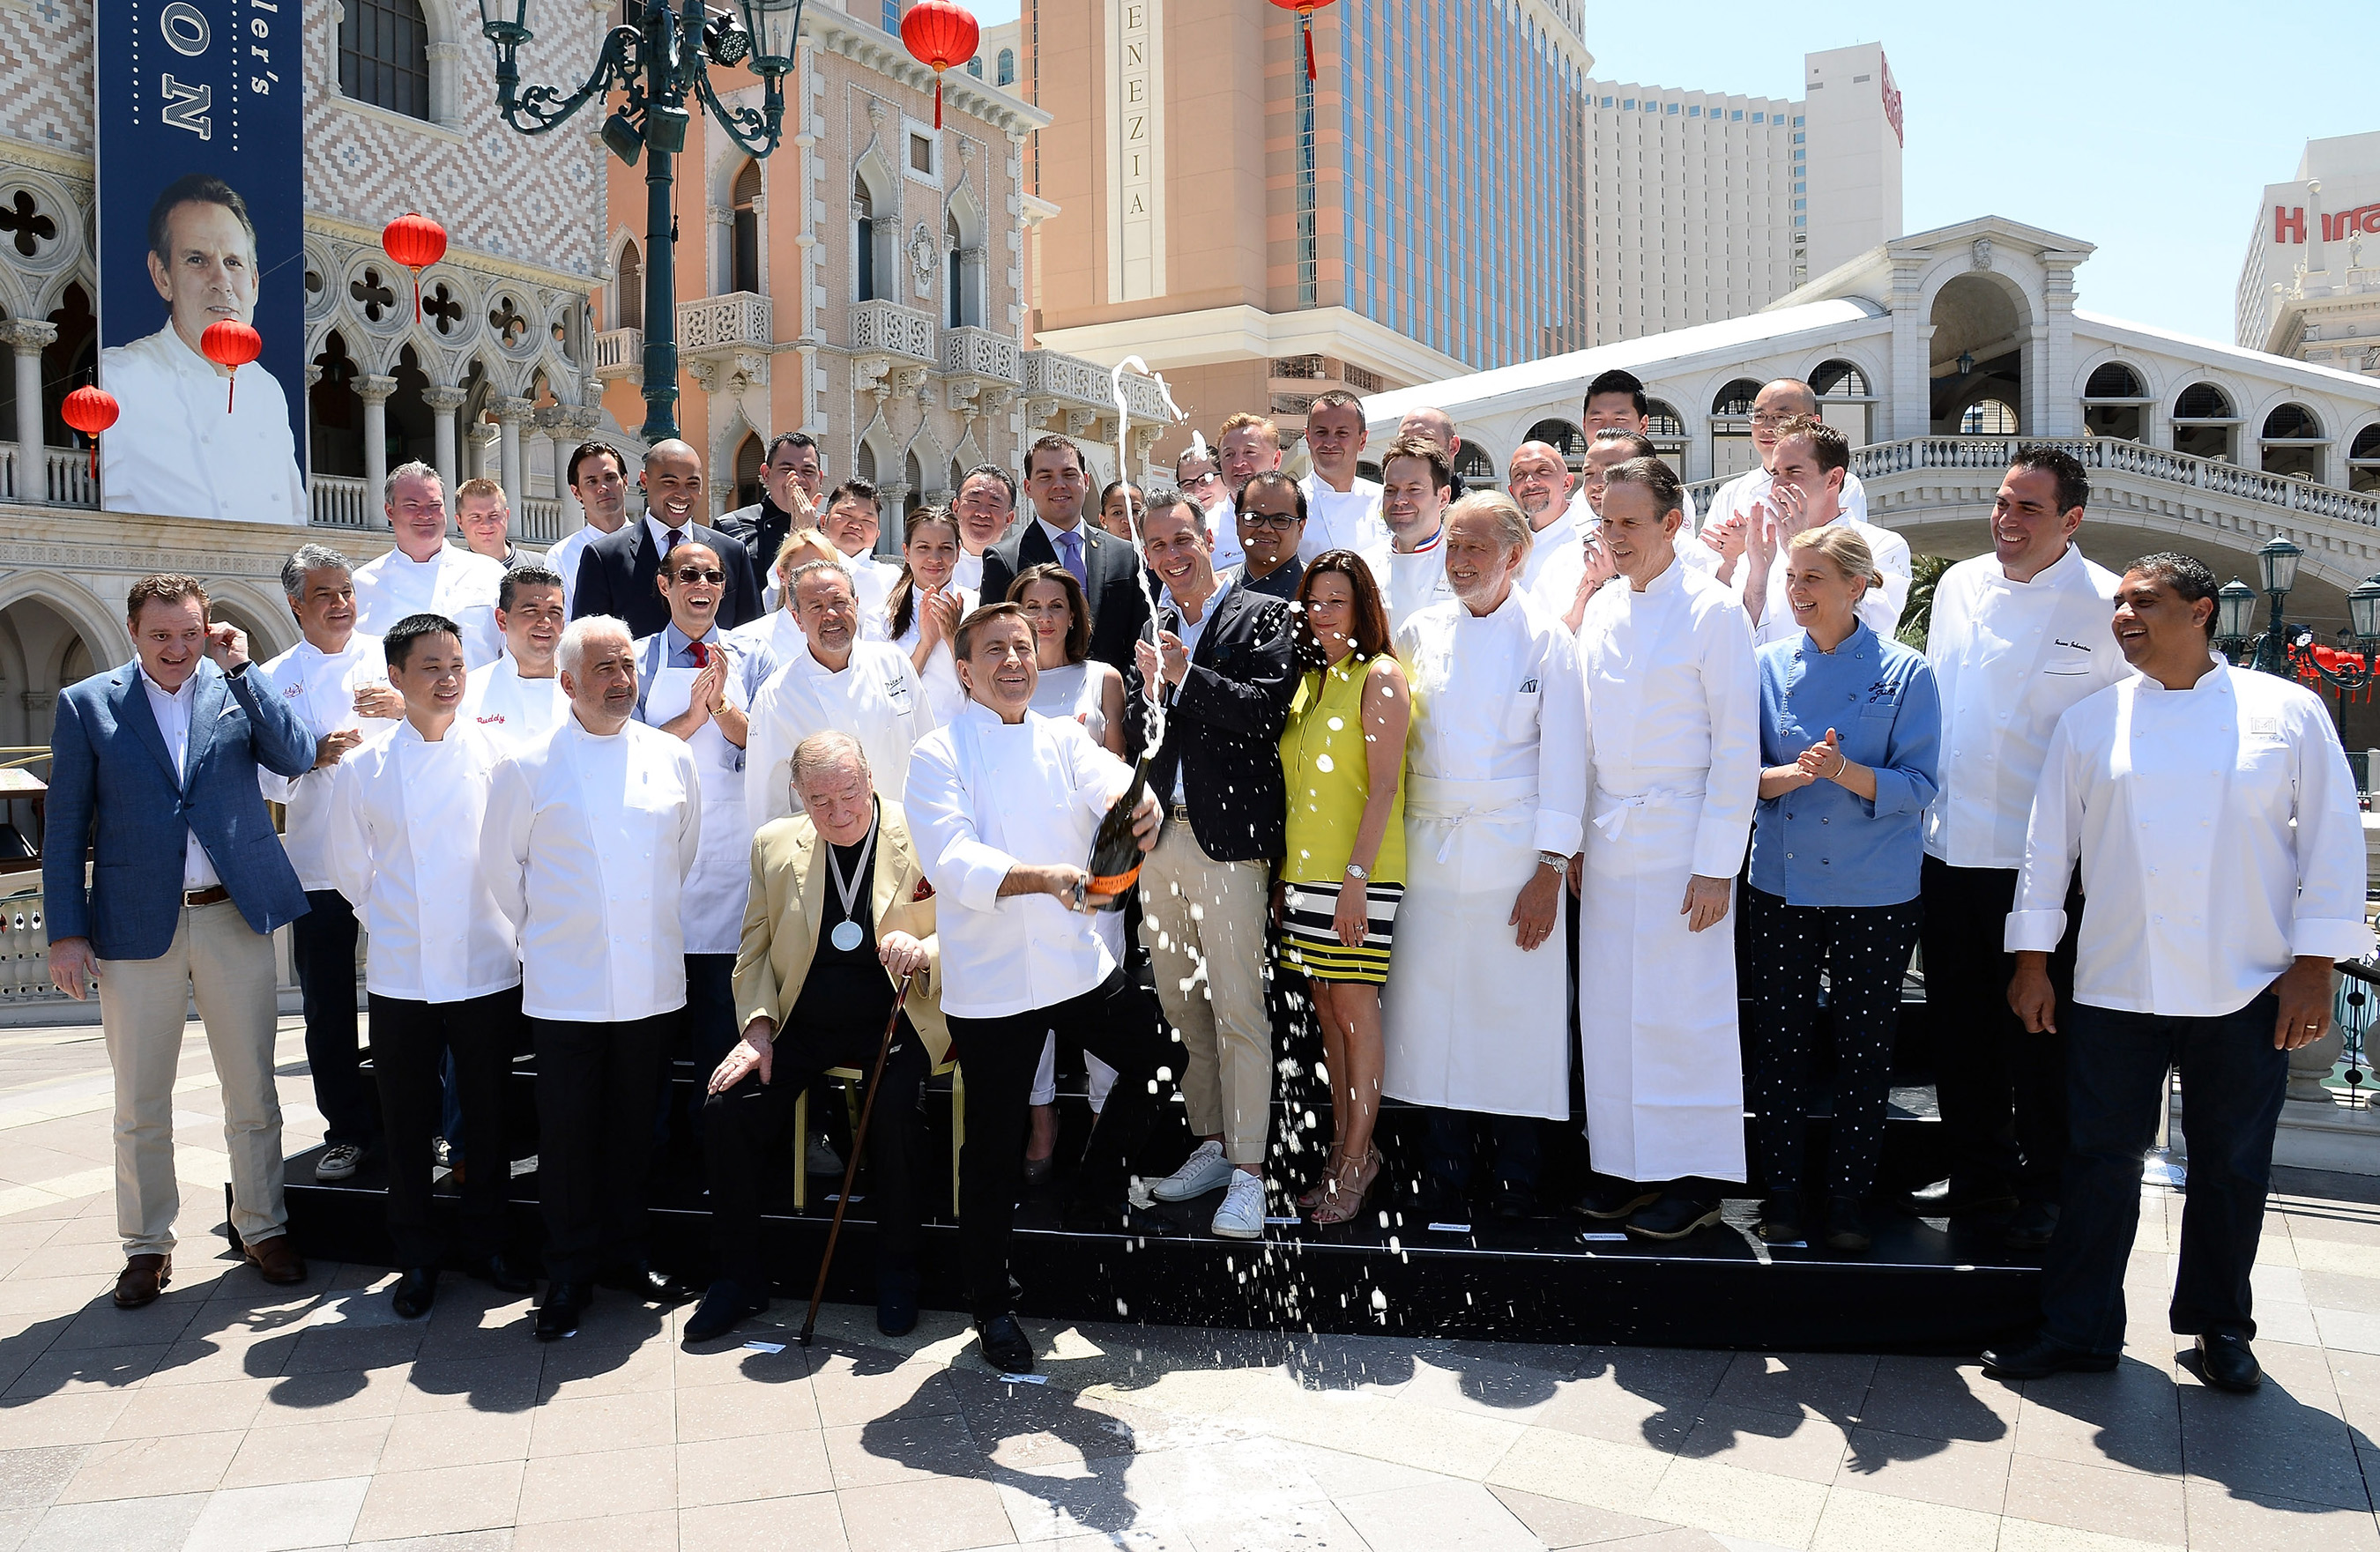 LAS VEGAS, NV - MAY 08: Chef Daniel Boulud (C) marks the beginning of the eighth annual Vegas Uncork'd by Bon Appetit culinary festival, featuring chefs from Aria, the Bellagio, Caesars Palace, the MGM Grand and The Venetian, with a ceremonial Mionetto Prosecco saber-off in front of The Venetian Las Vegas on May 8, 2014 in Las Vegas, Nevada. (Photo by Ethan Miller/Getty Images for Vegas Uncork'd by Bon Appetit) *** Local Caption *** Daniel Boulud